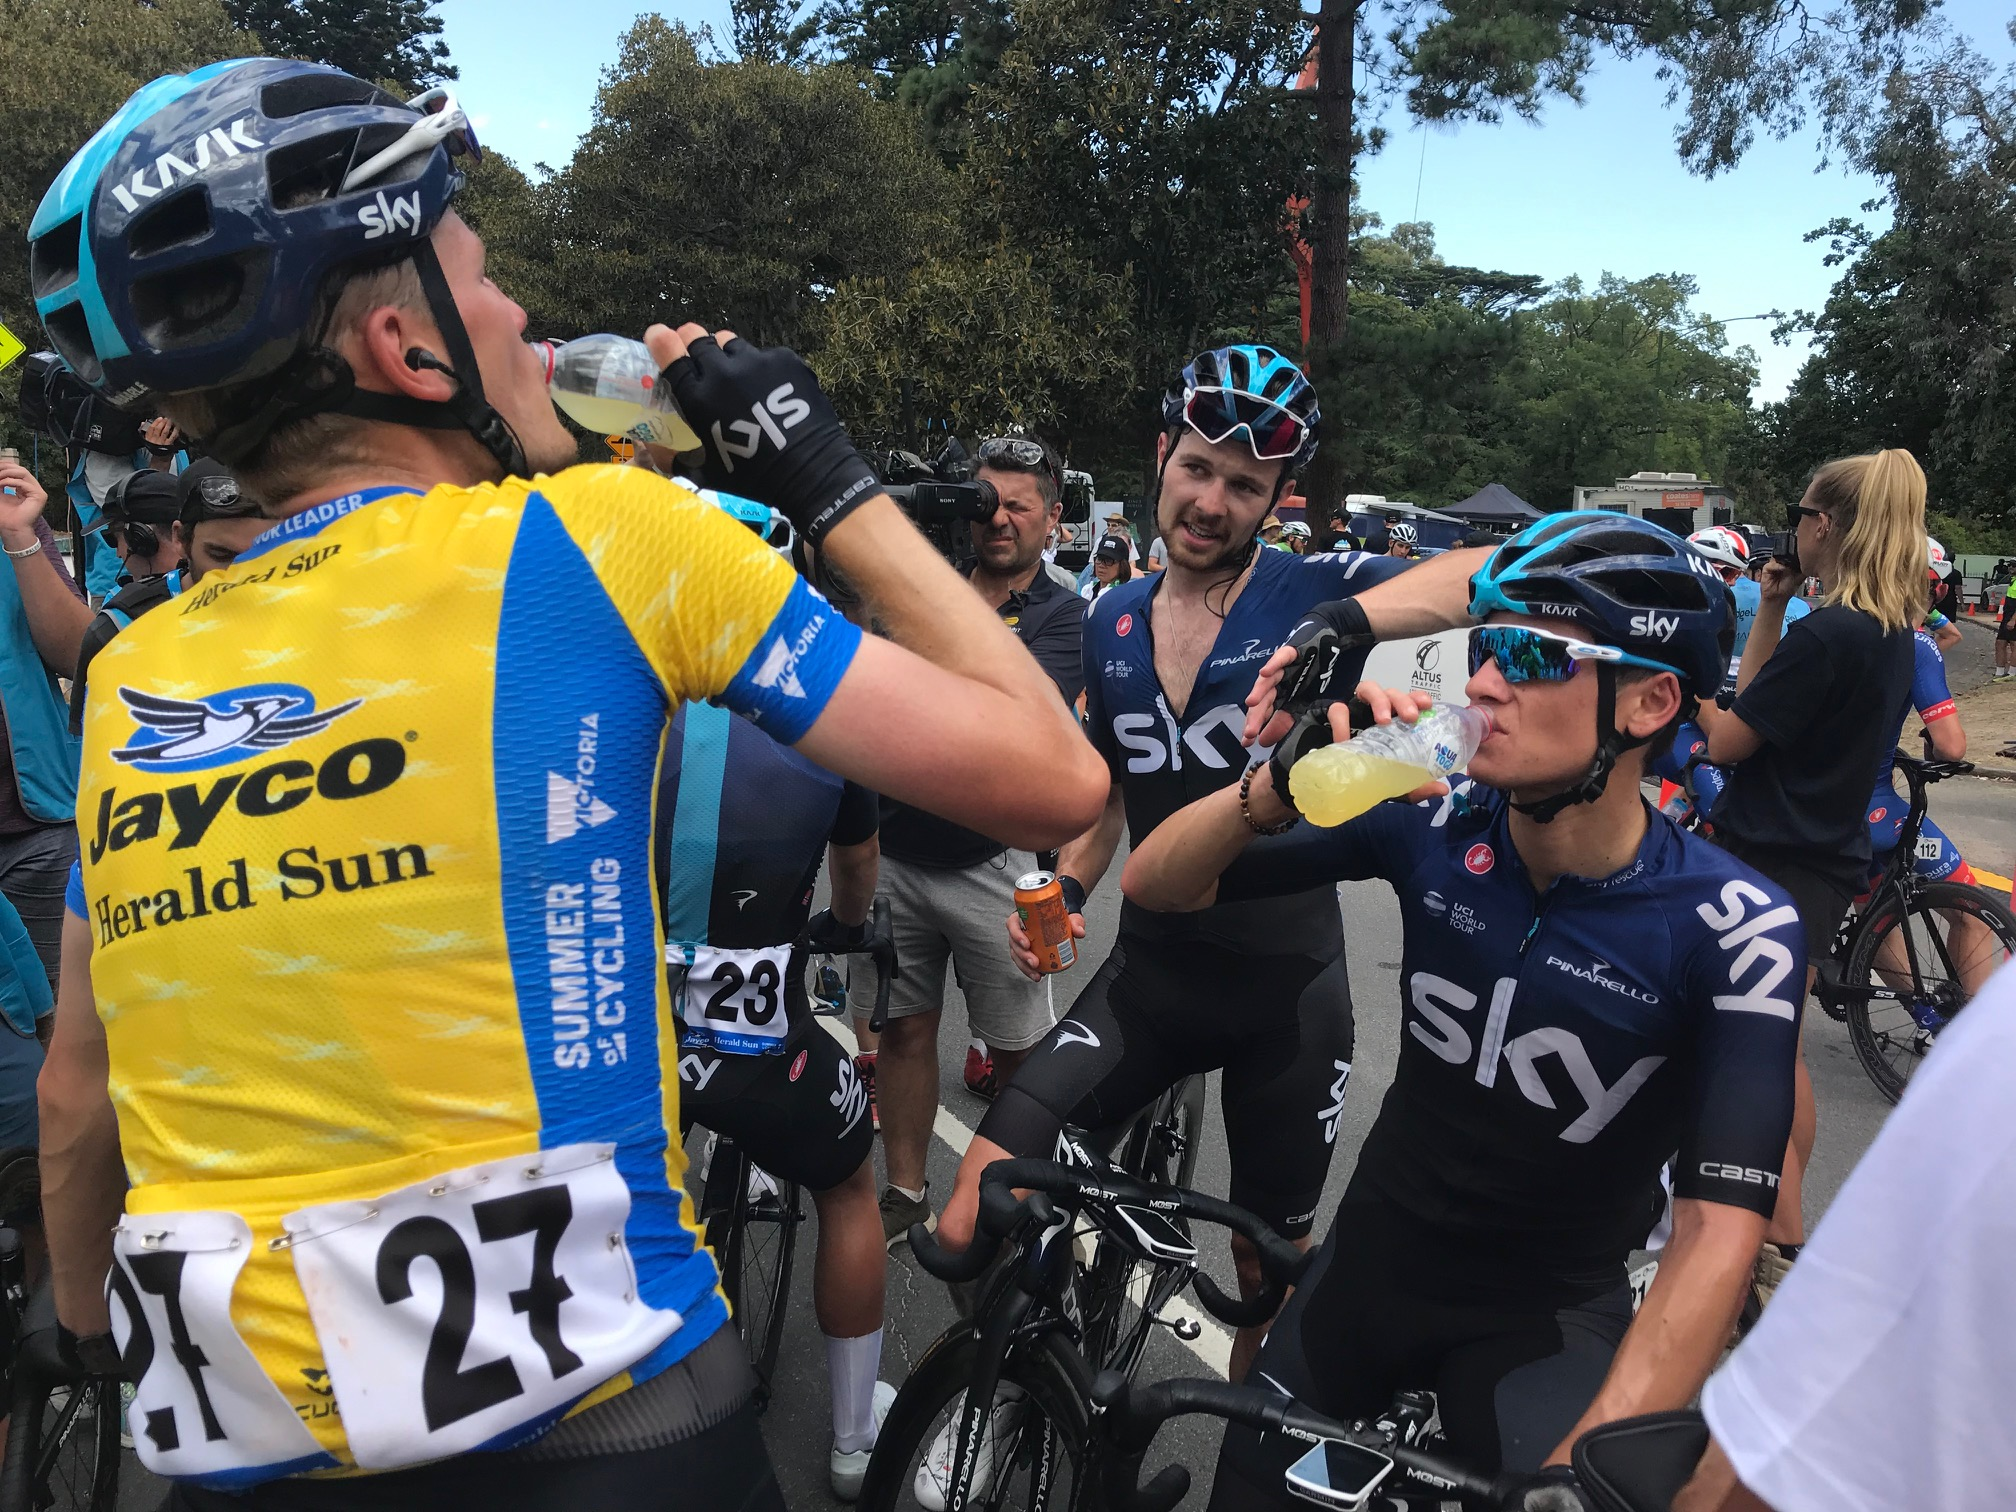 HST 19 @ Sunday @ Melbourne Botanical Gardens - Team Sky were simply outstanding … they won everything but the chook raffle